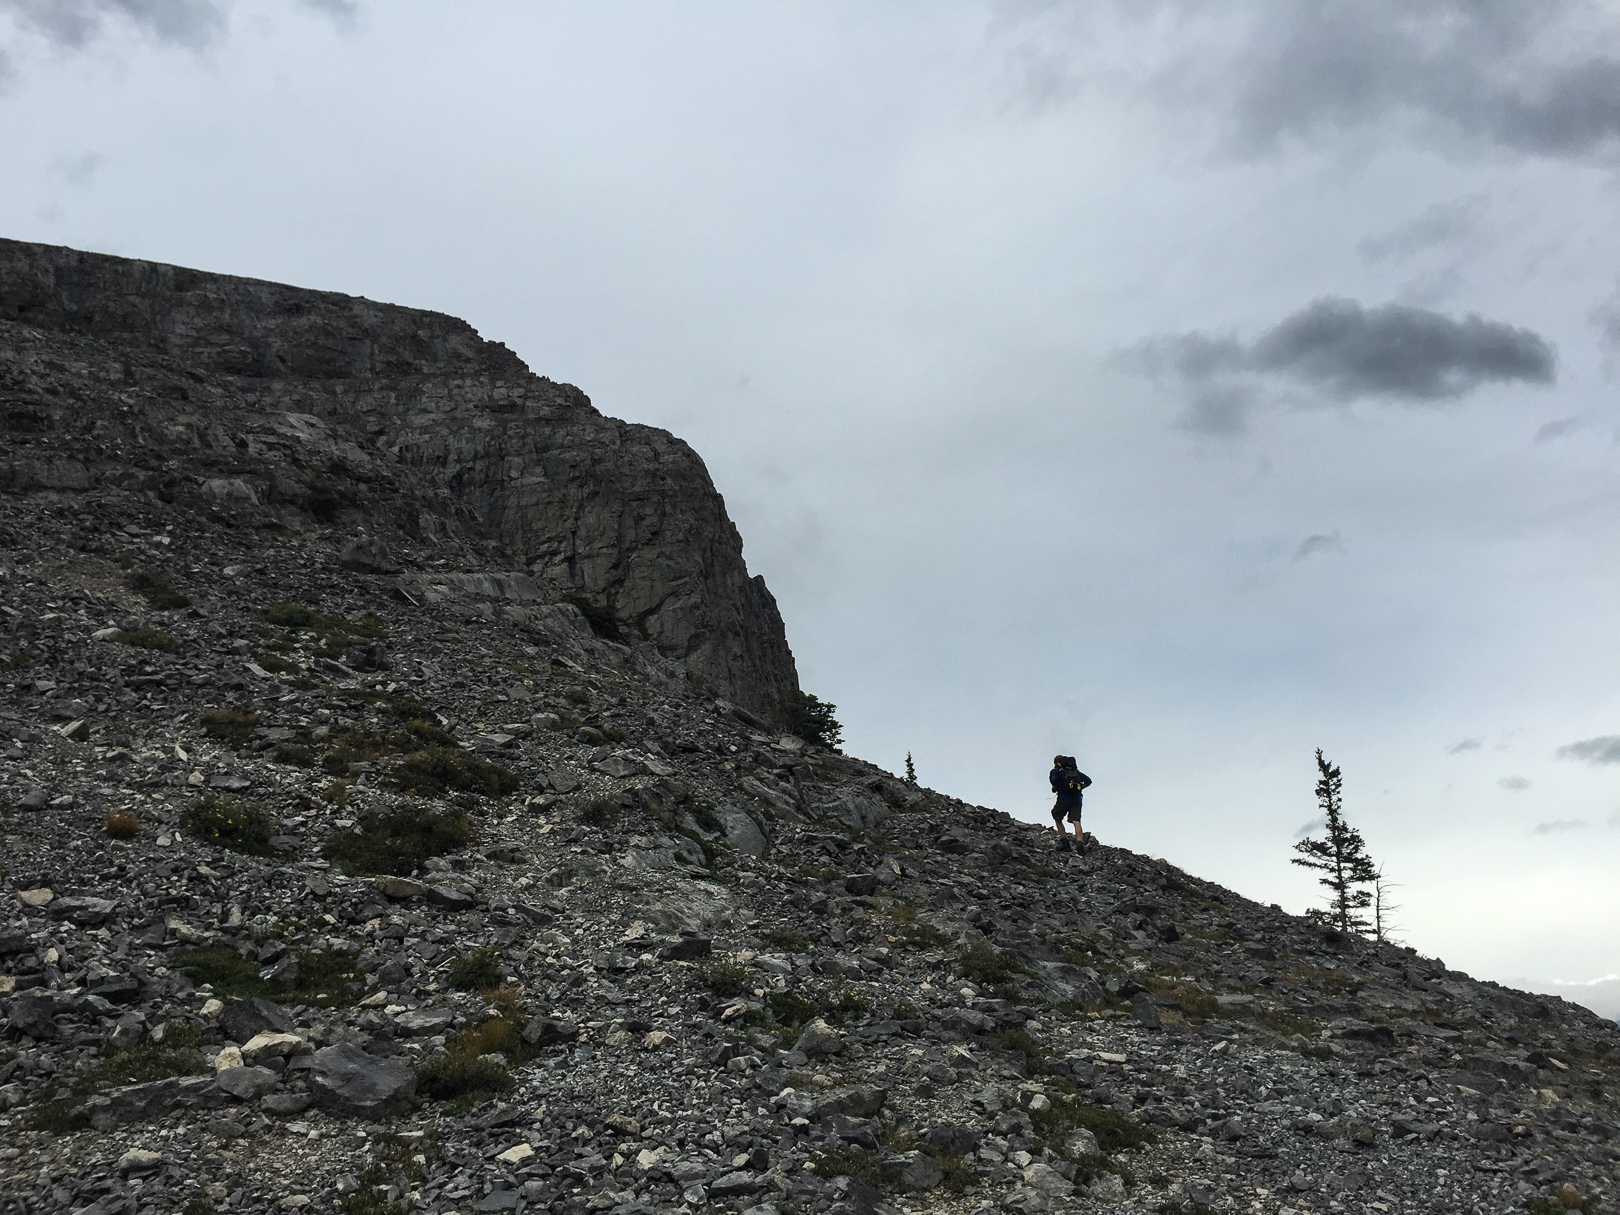 It's a rocky ascent for most of the hike